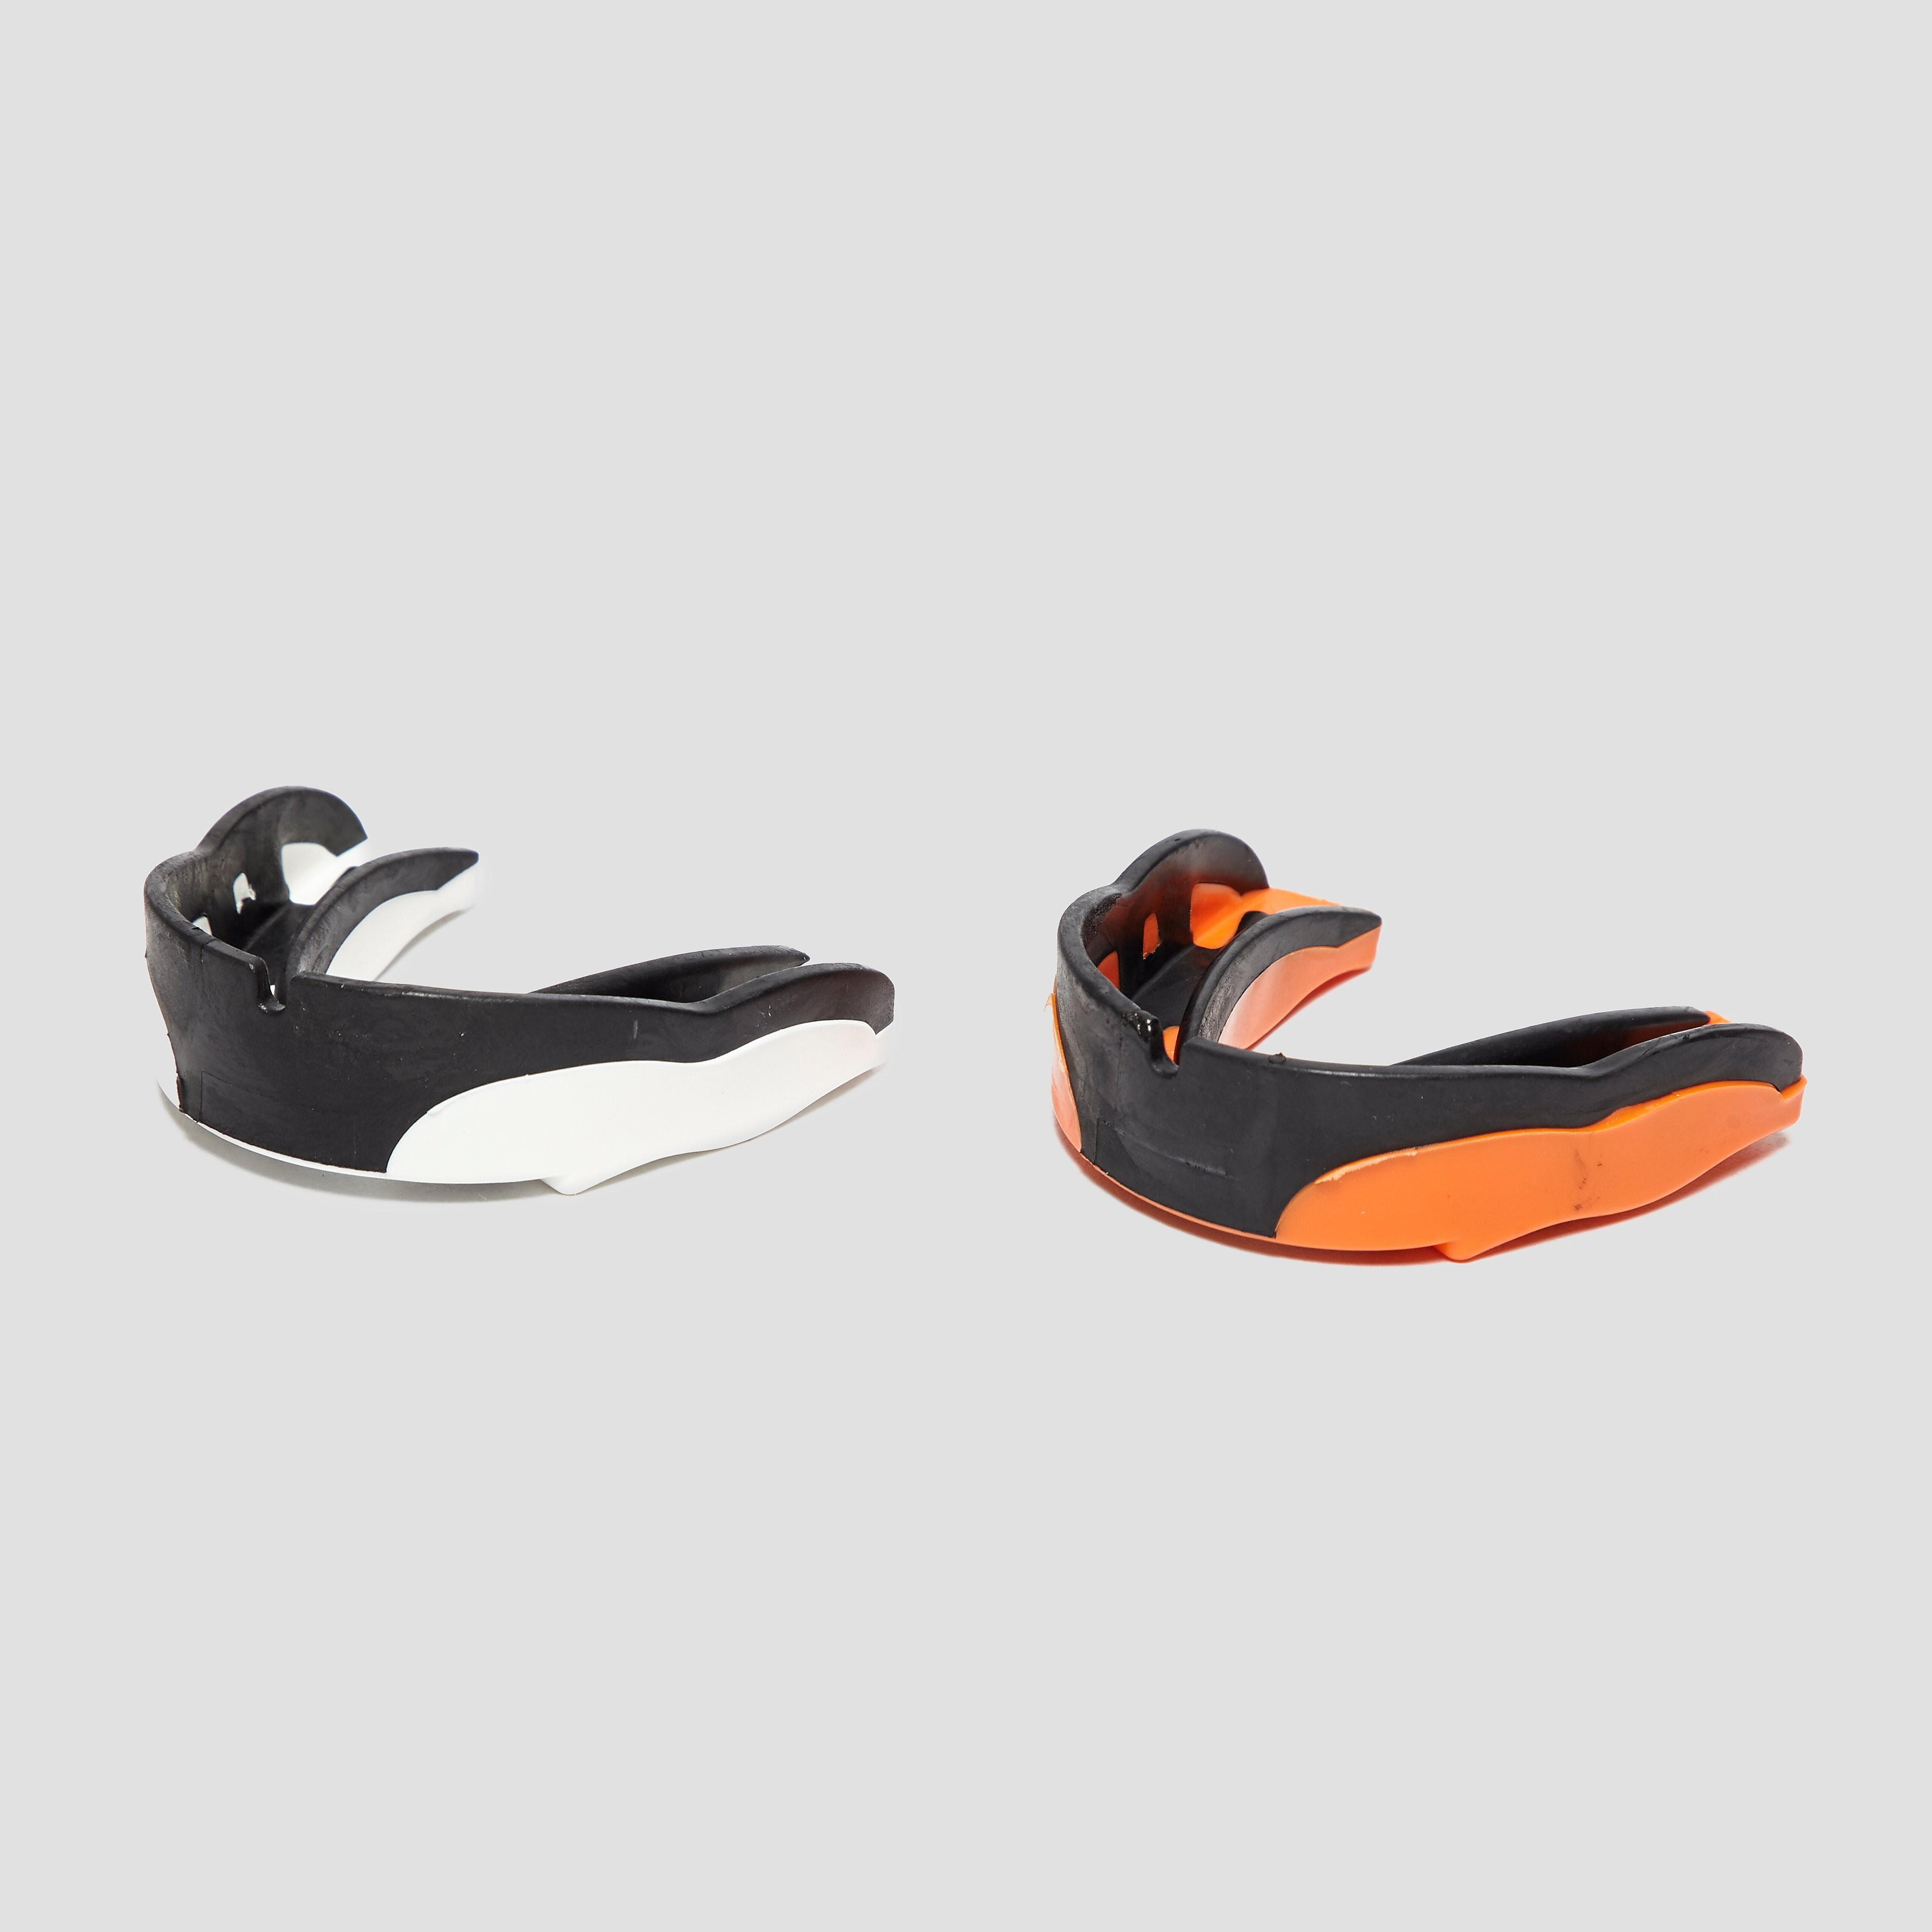 Shock Doctor V1.5 Mouthguard Twin Pack